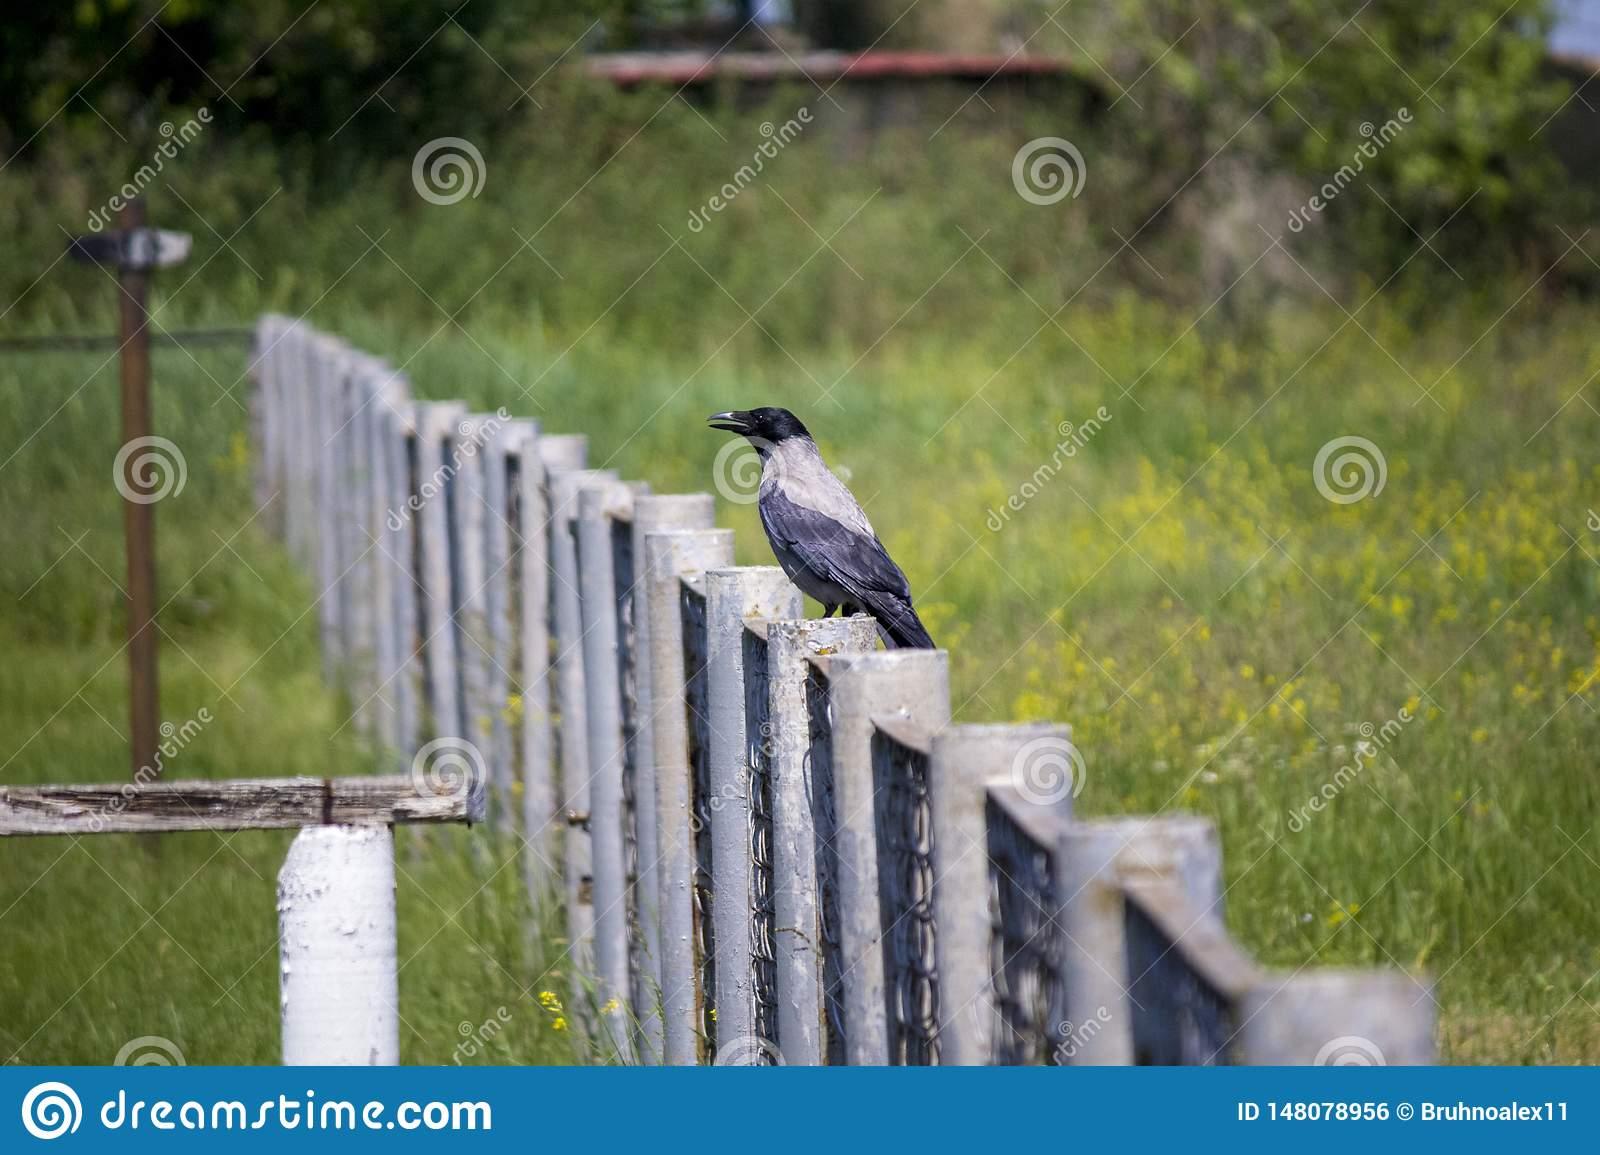 Raven on the fence. wary raven. Spring.